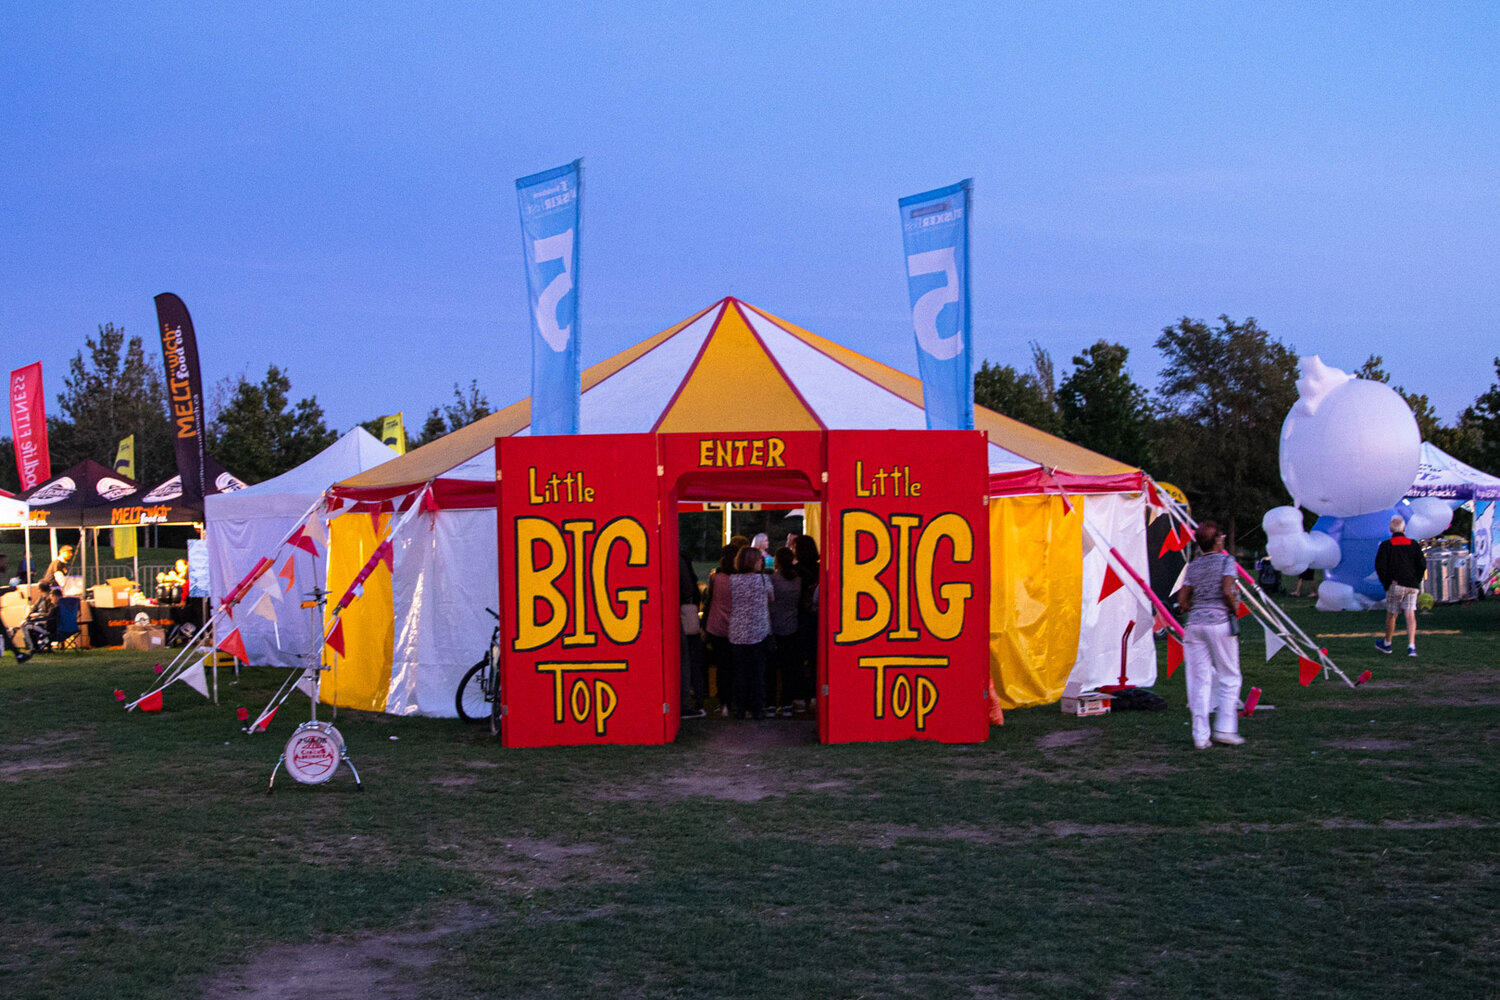 The Little Big Top